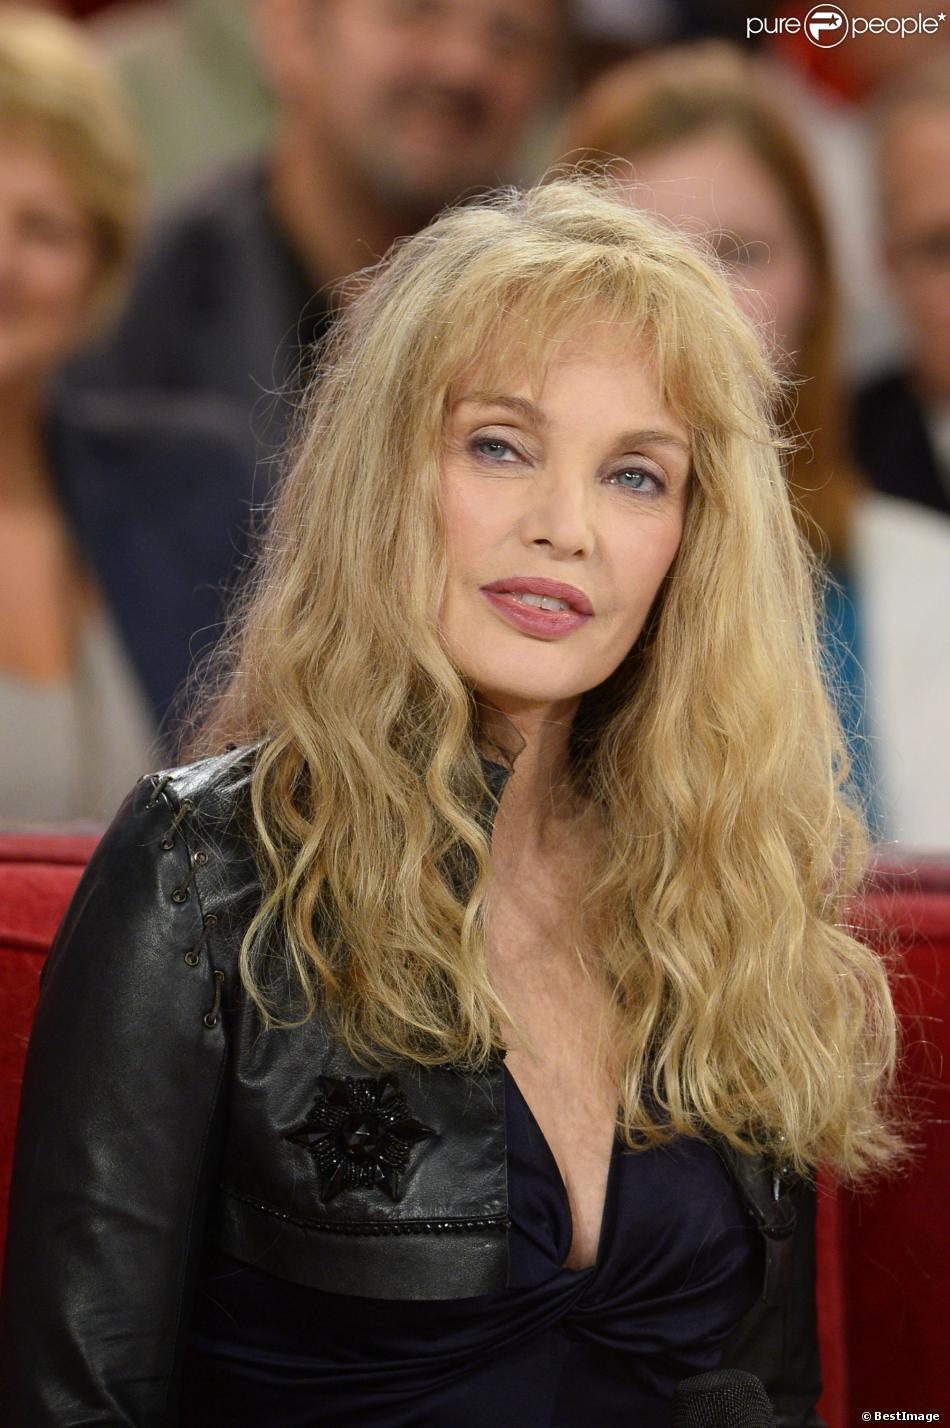 The 59-year old daughter of father (?) and mother(?), 168 cm tall Arielle Dombasle in 2017 photo